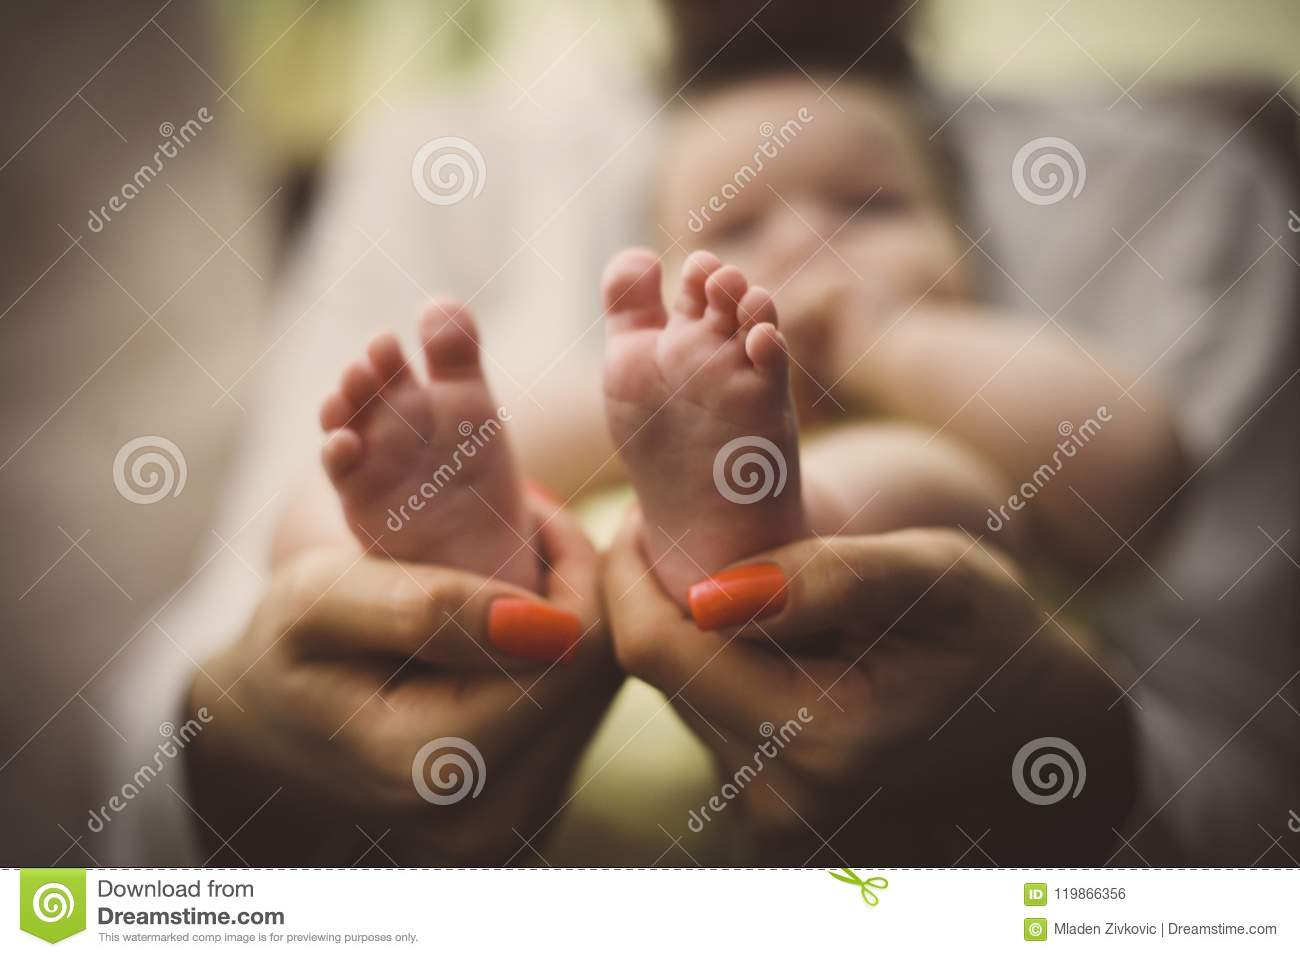 Mother holding baby feet in hands. Focus on feet.